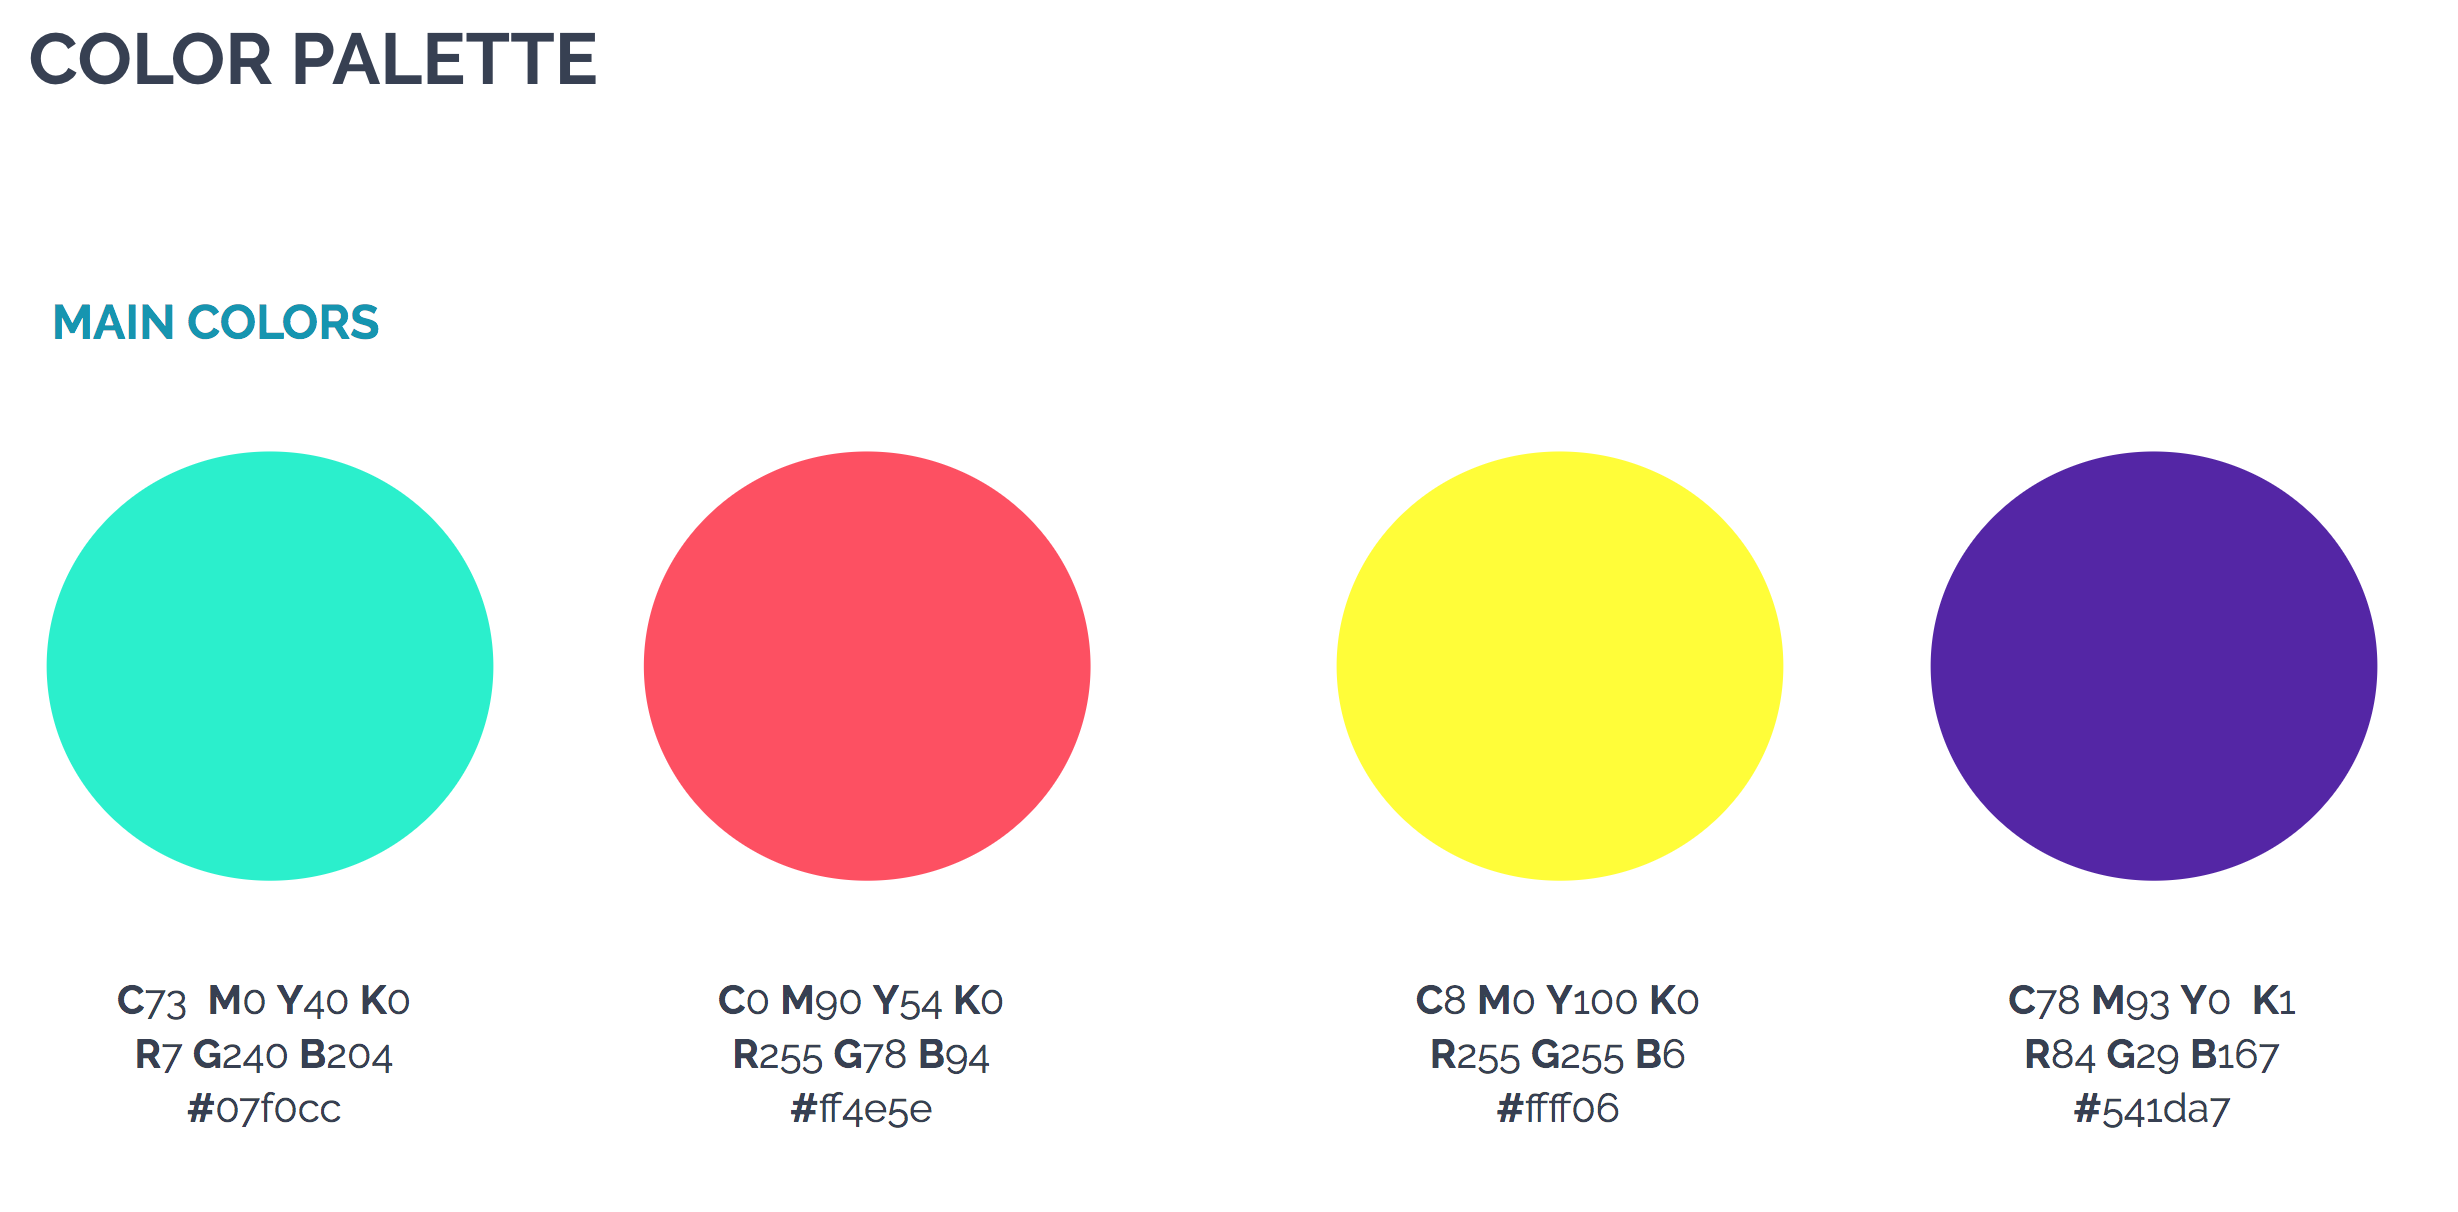 image of the color palette